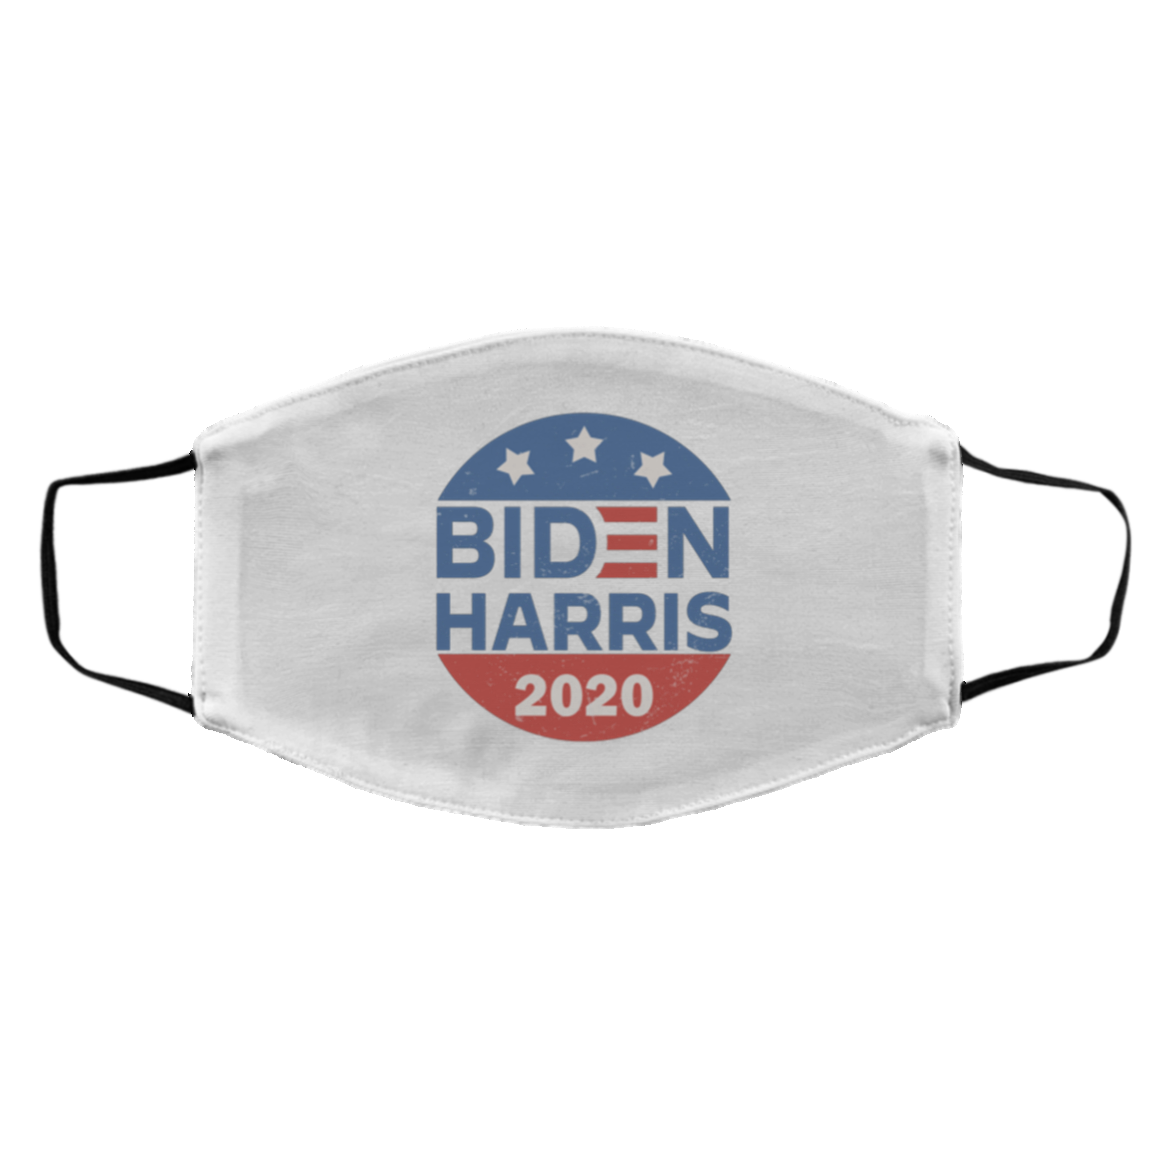 Biden Harris 2020 Washable Reusable Custom Printed Cloth Face Mask Cover - President 2020 Election Gifts, White, Cloth Face Cover – Medium/Large